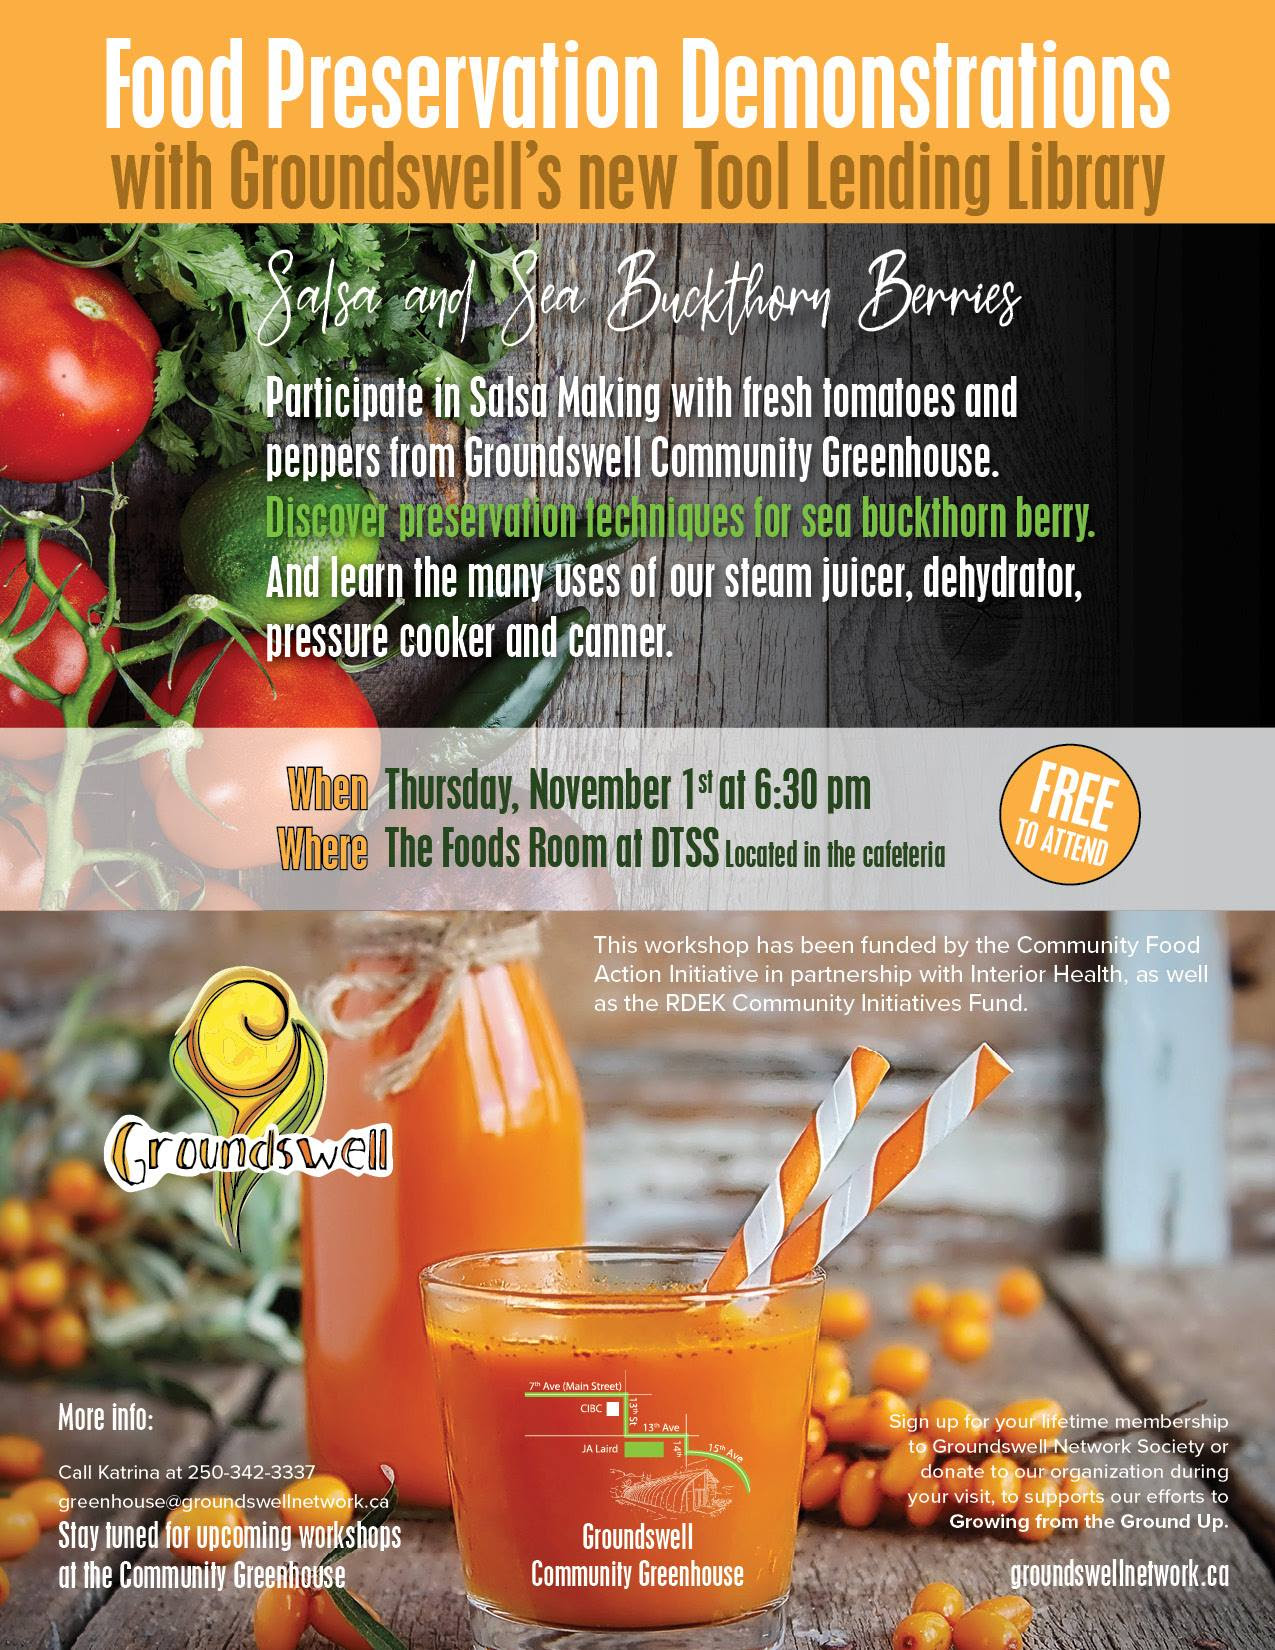 Food Preservation at Groundswell 2018